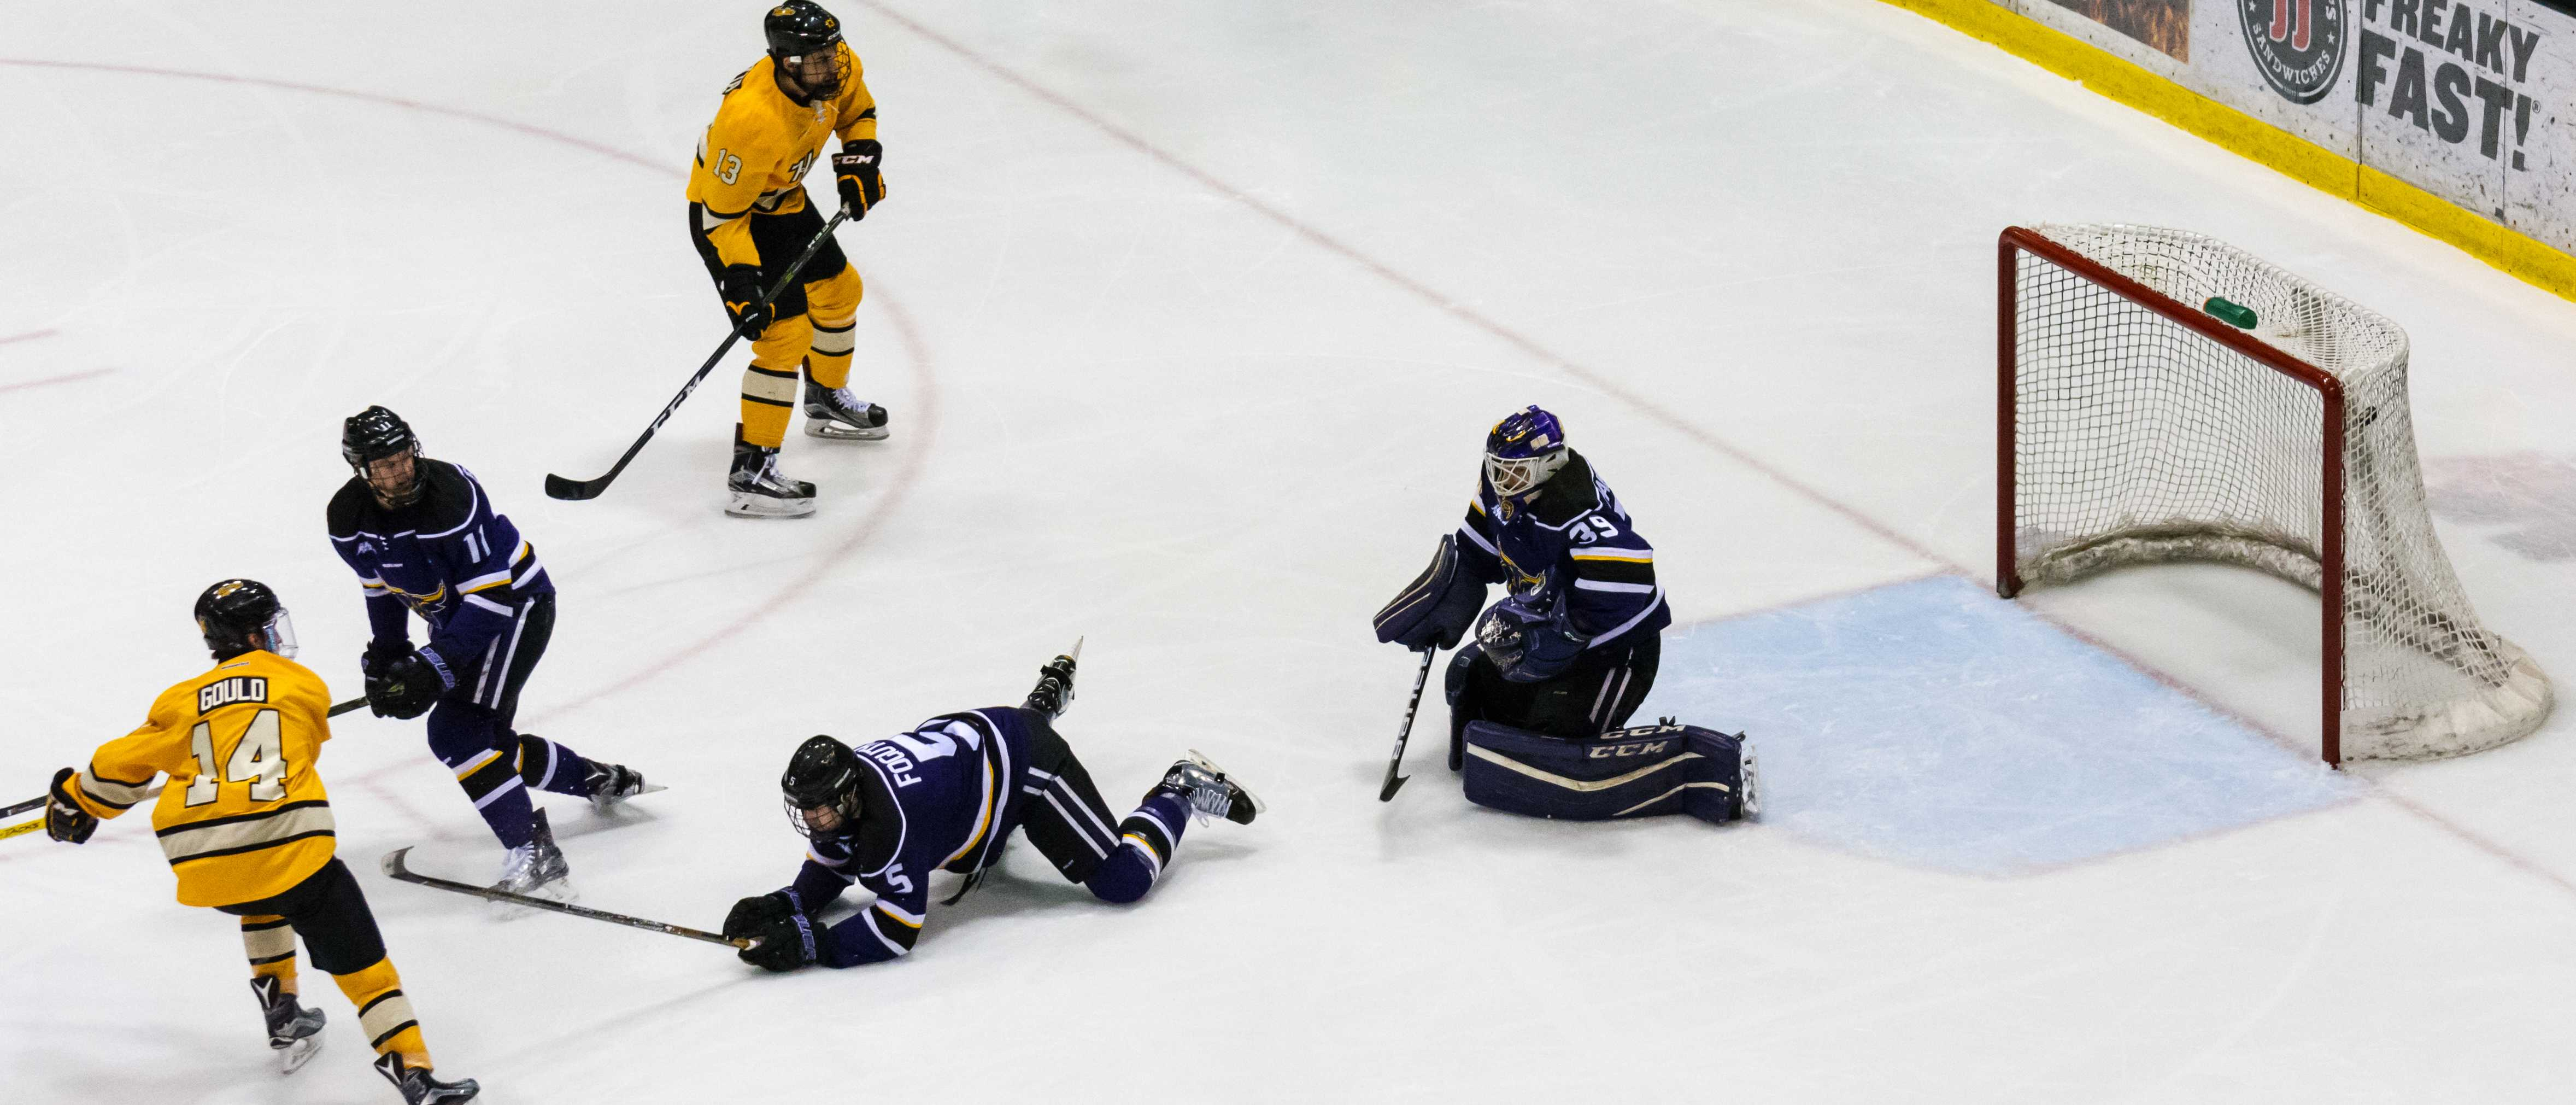 Freshman forward Gavin Gould, far left, scoring the first goal in his hat trick.                      - Photo by Horatio Babcock